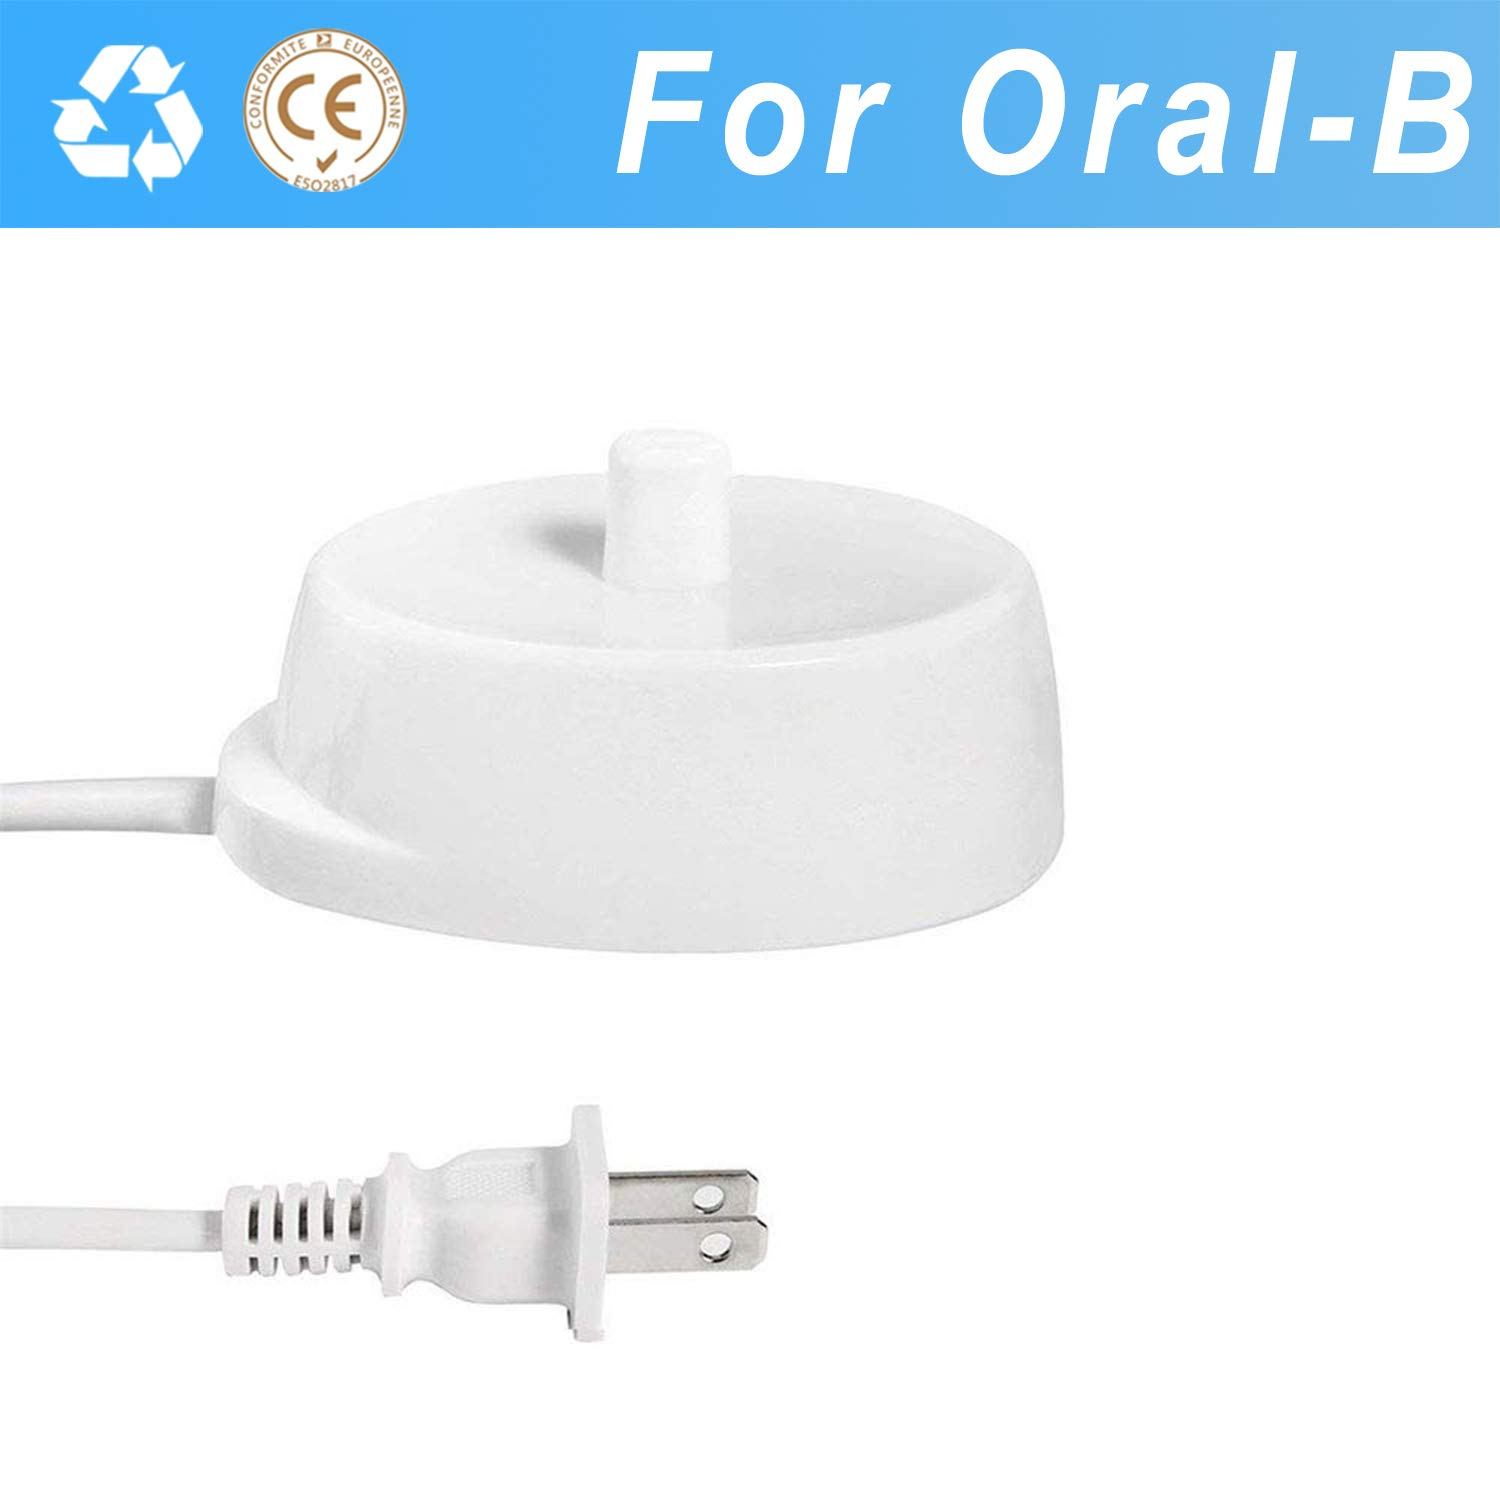 For Braun Oral B Electric Toothbrush Replacement Charger,Waterproof Inductive Charging Base Model 3757 Portable Environmental ABS For Travel (110V-240V)